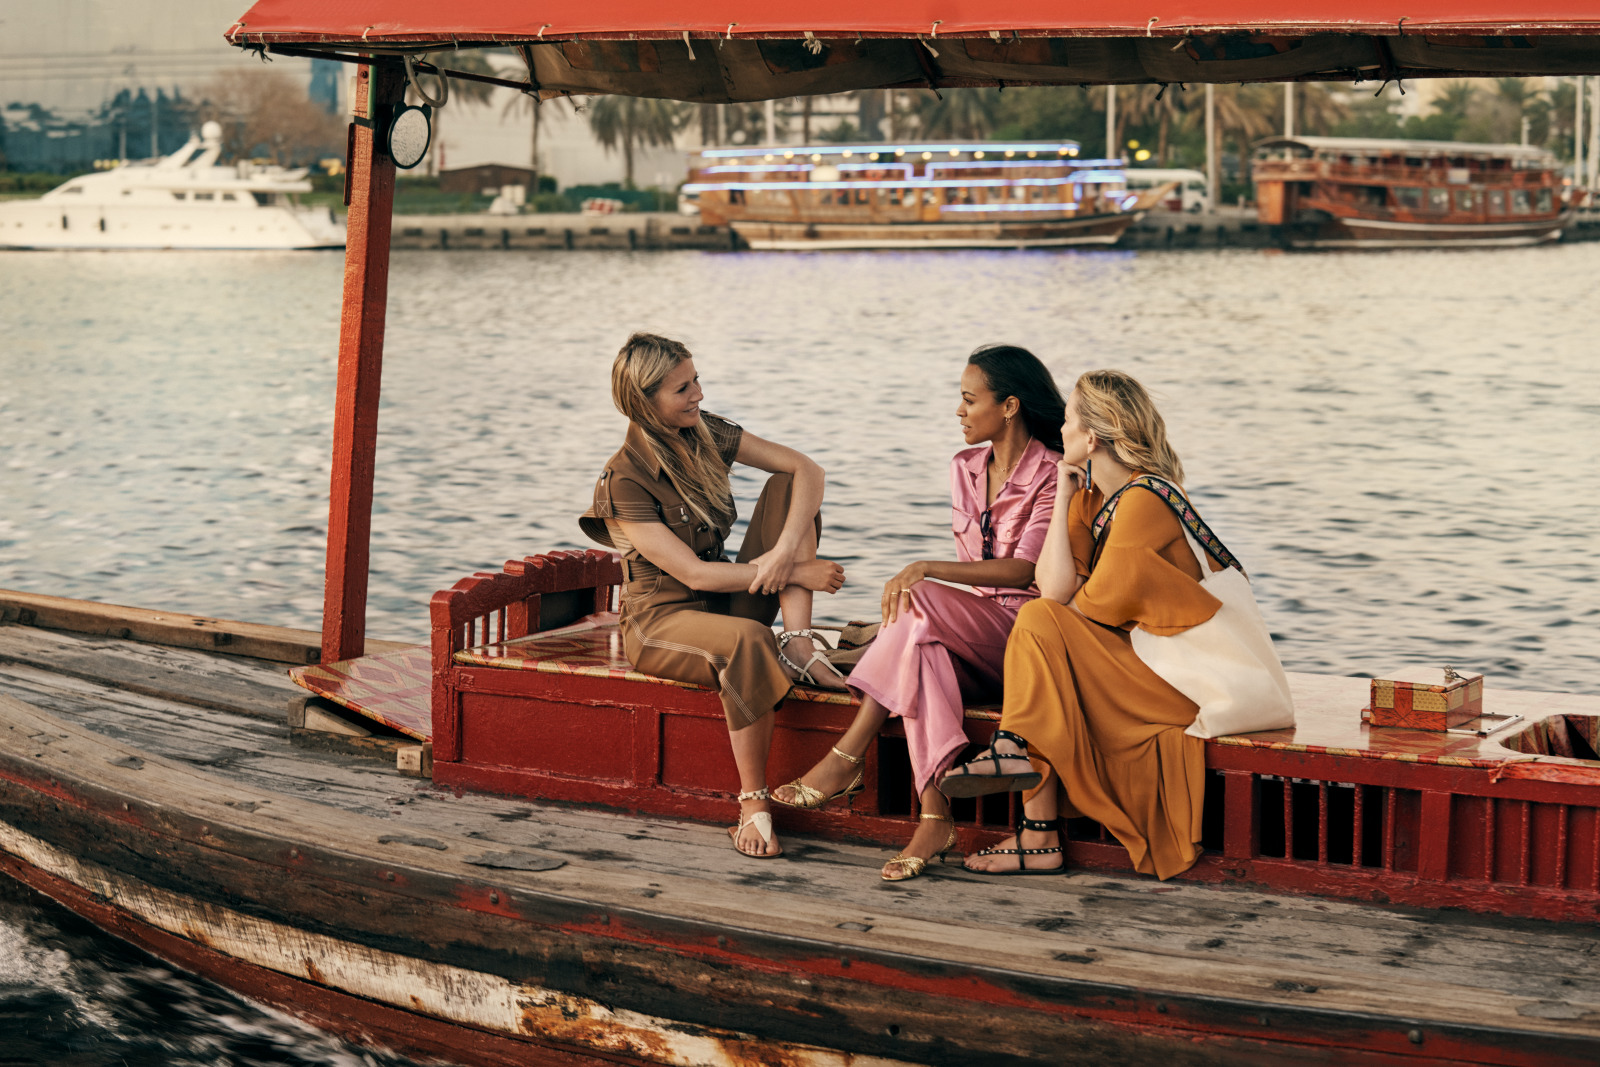 Gwyneth Paltrow, Zoe Saldana, and Kate Hudson Have an Unexpected New Gig